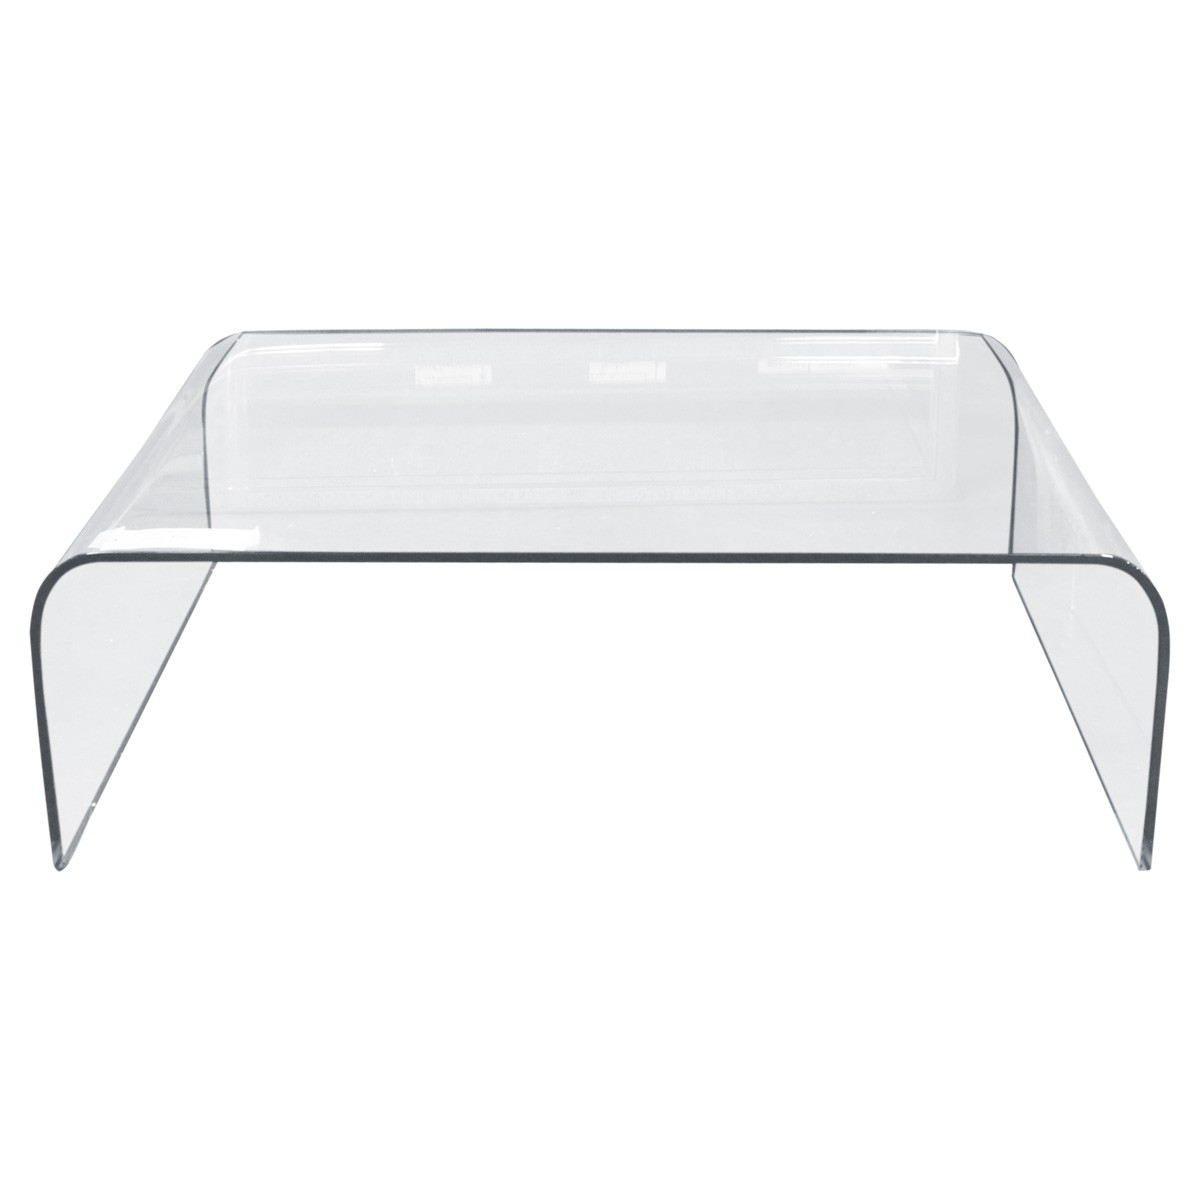 Glass Waterfall Coffee Table Wonderful Brown Walnut Veneer Lift Top Drawer Glass Storage Accent Side Table Walmart Tables Elegant With Pictures Of Walmart Tables Interio (Image 9 of 10)